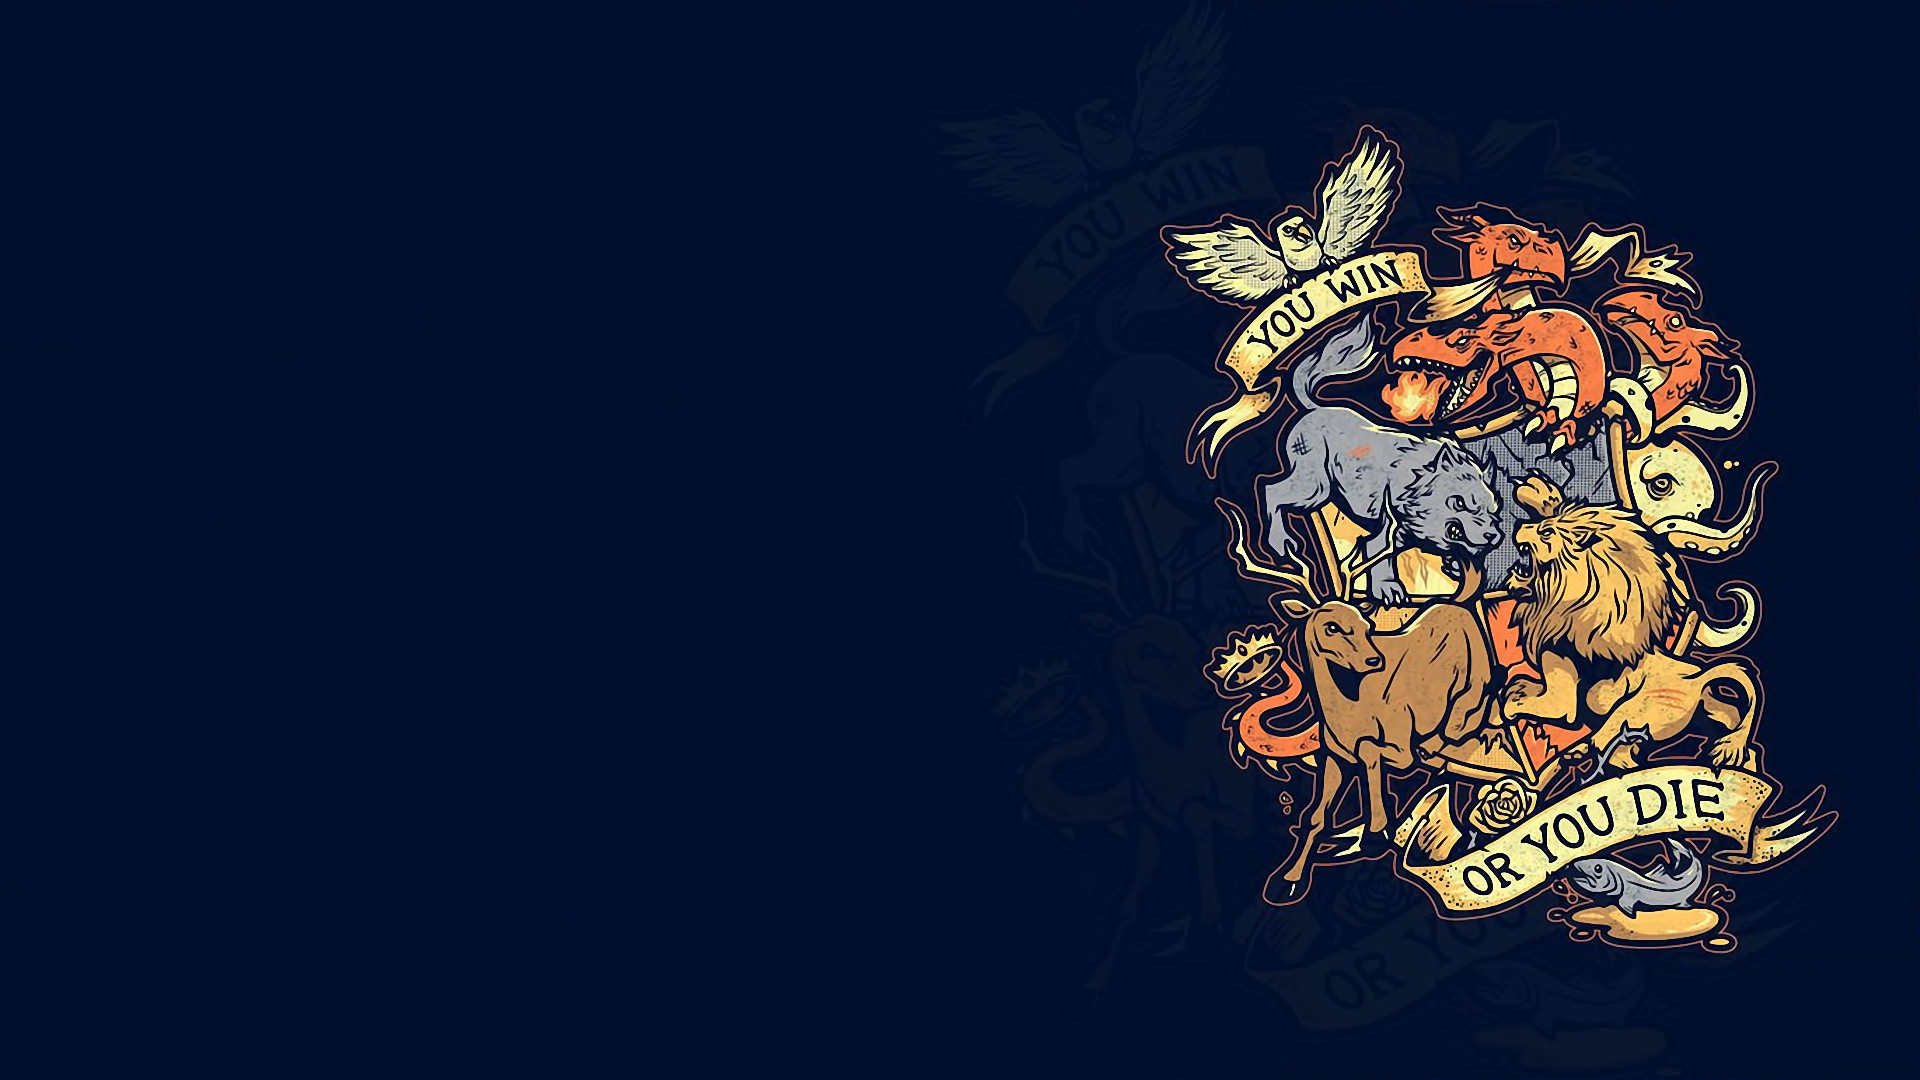 Free Download Game Of Thrones Fantasy Crest G Wallpaper 1920x1080